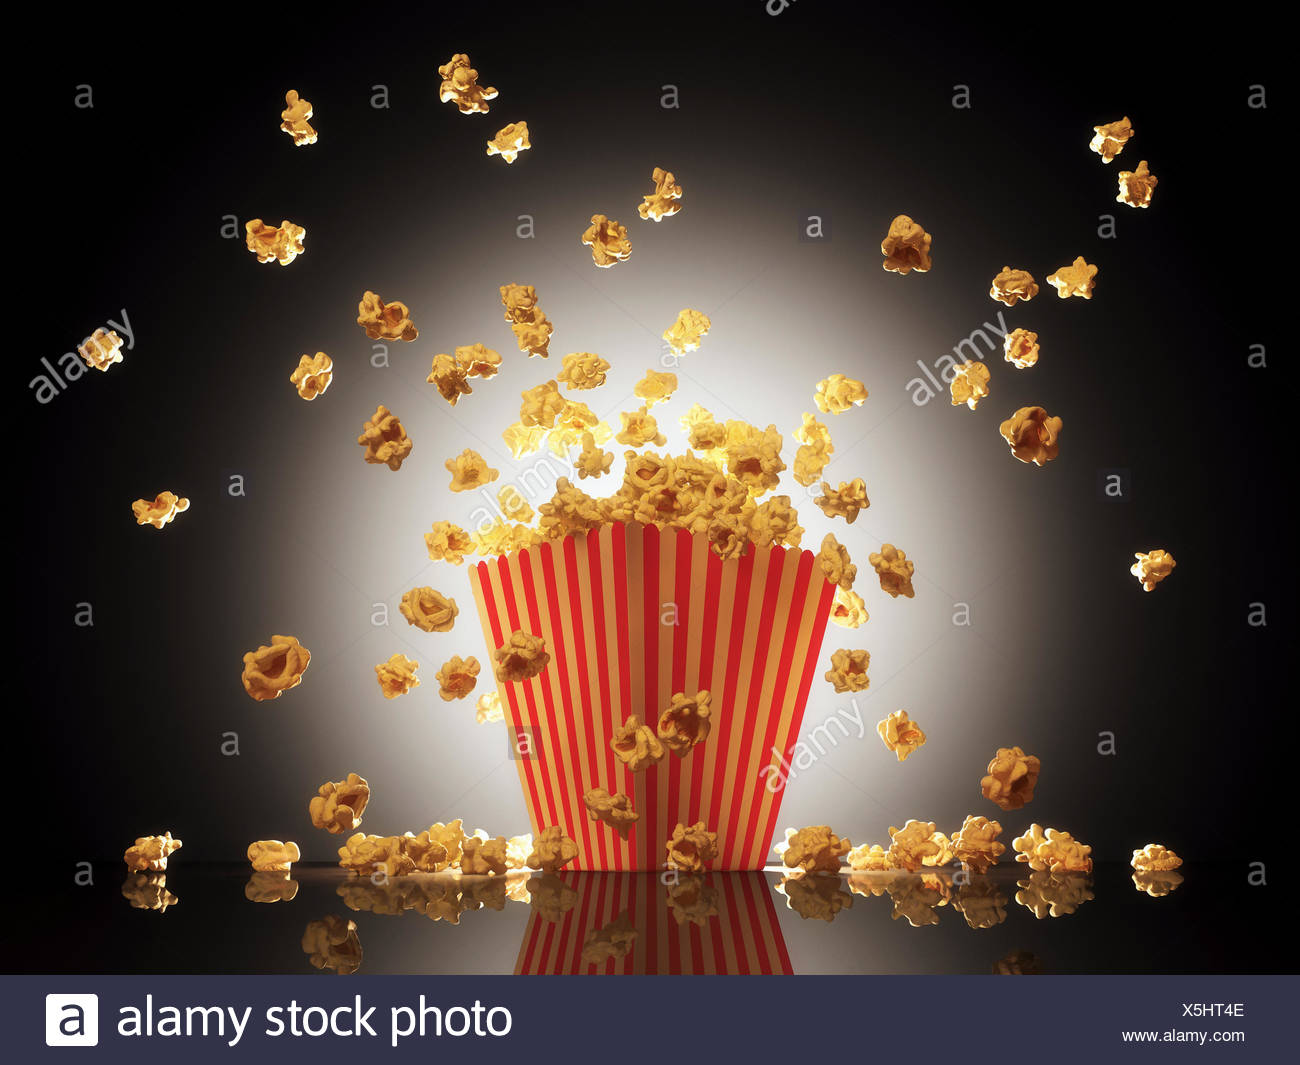 Popcorn exploding from bucket. - Stock Image